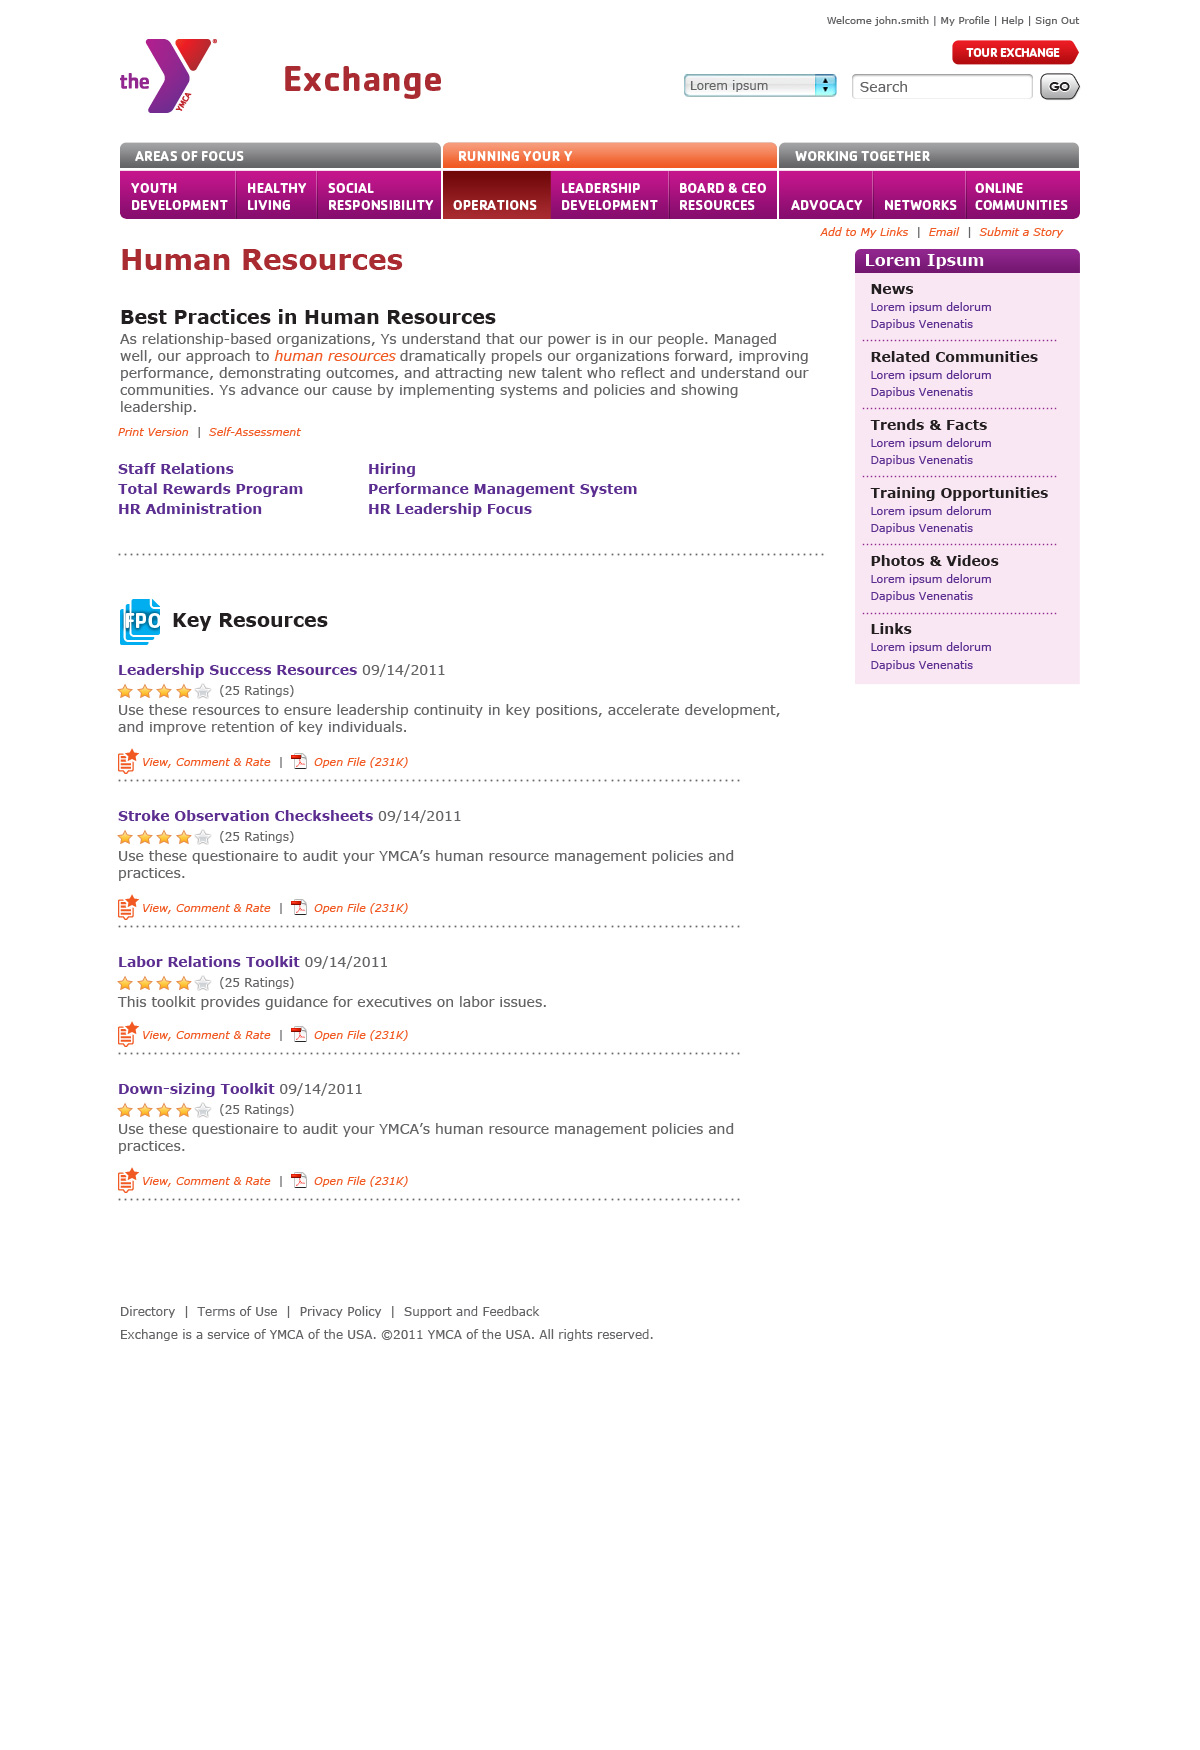 Intranet Article Page